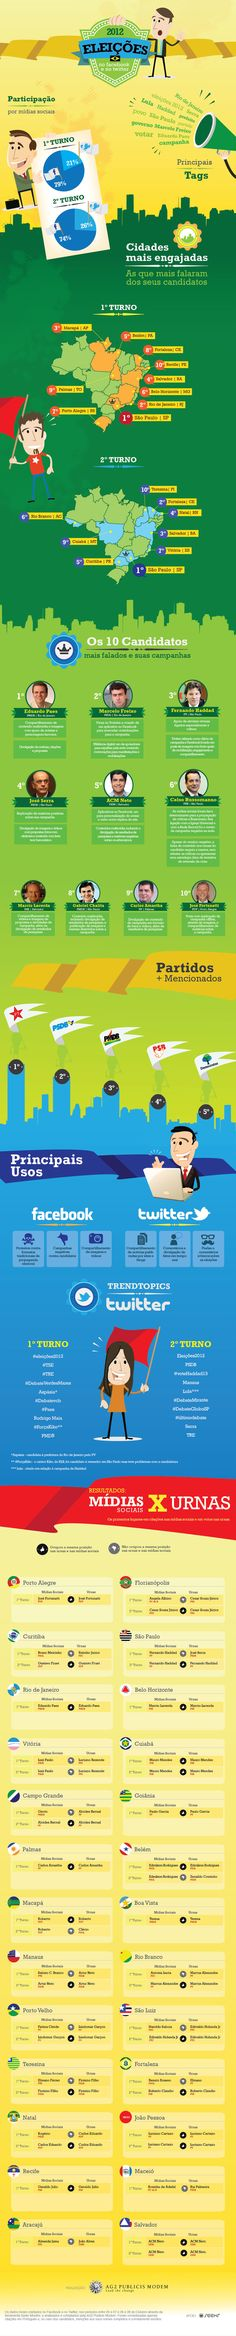 Facebook, Twitter, redes sociais, midias sociais, social media, marketing digital.